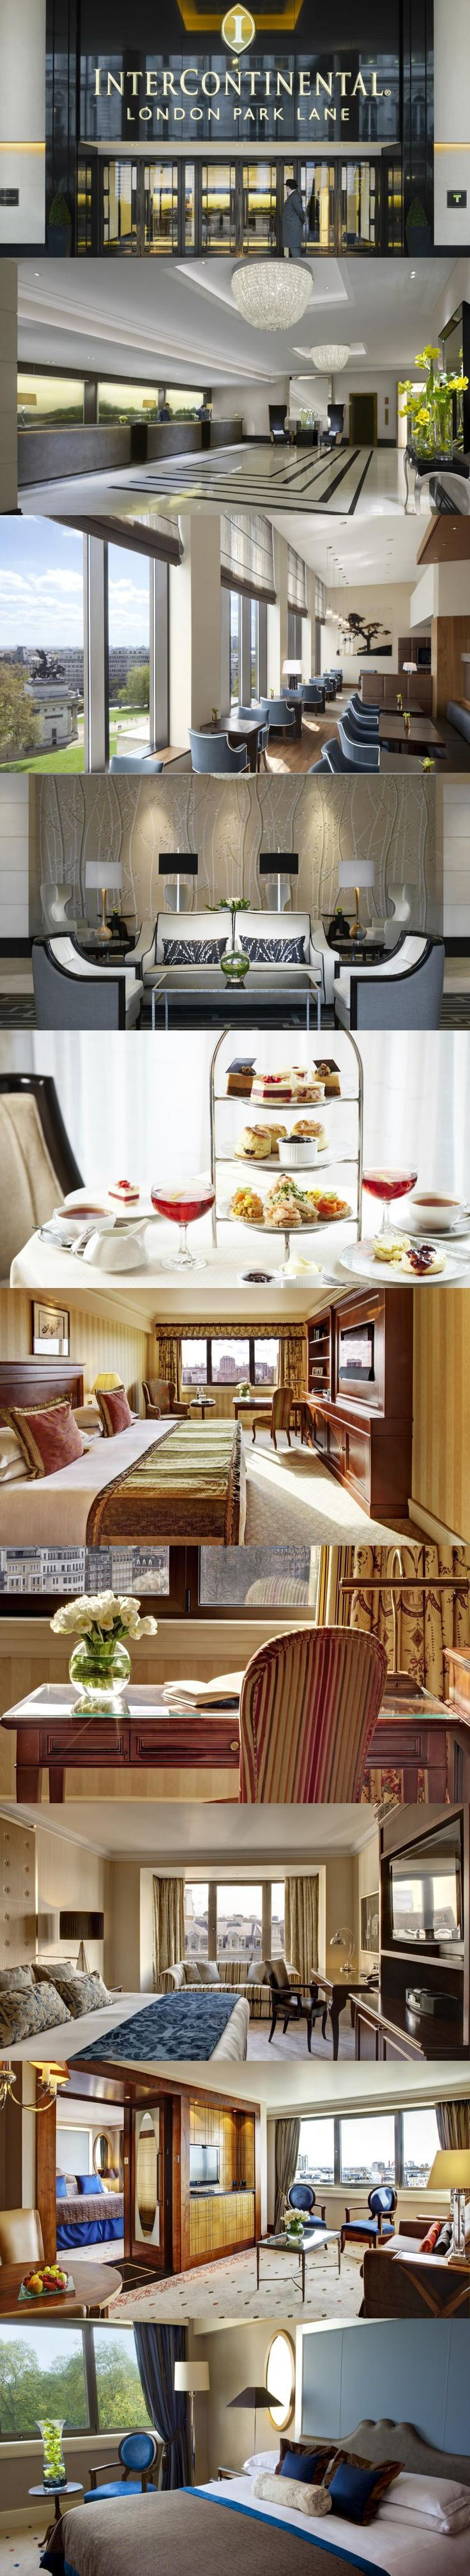 InterContinental London Park Lane. This elegant, 5-star hotel is located between Mayfair and Knightsbridge. Its luxurious rooms feature large LCD TVs and Bose sound systems, while its gourmet restaurant serves seasonal cuisine. #London